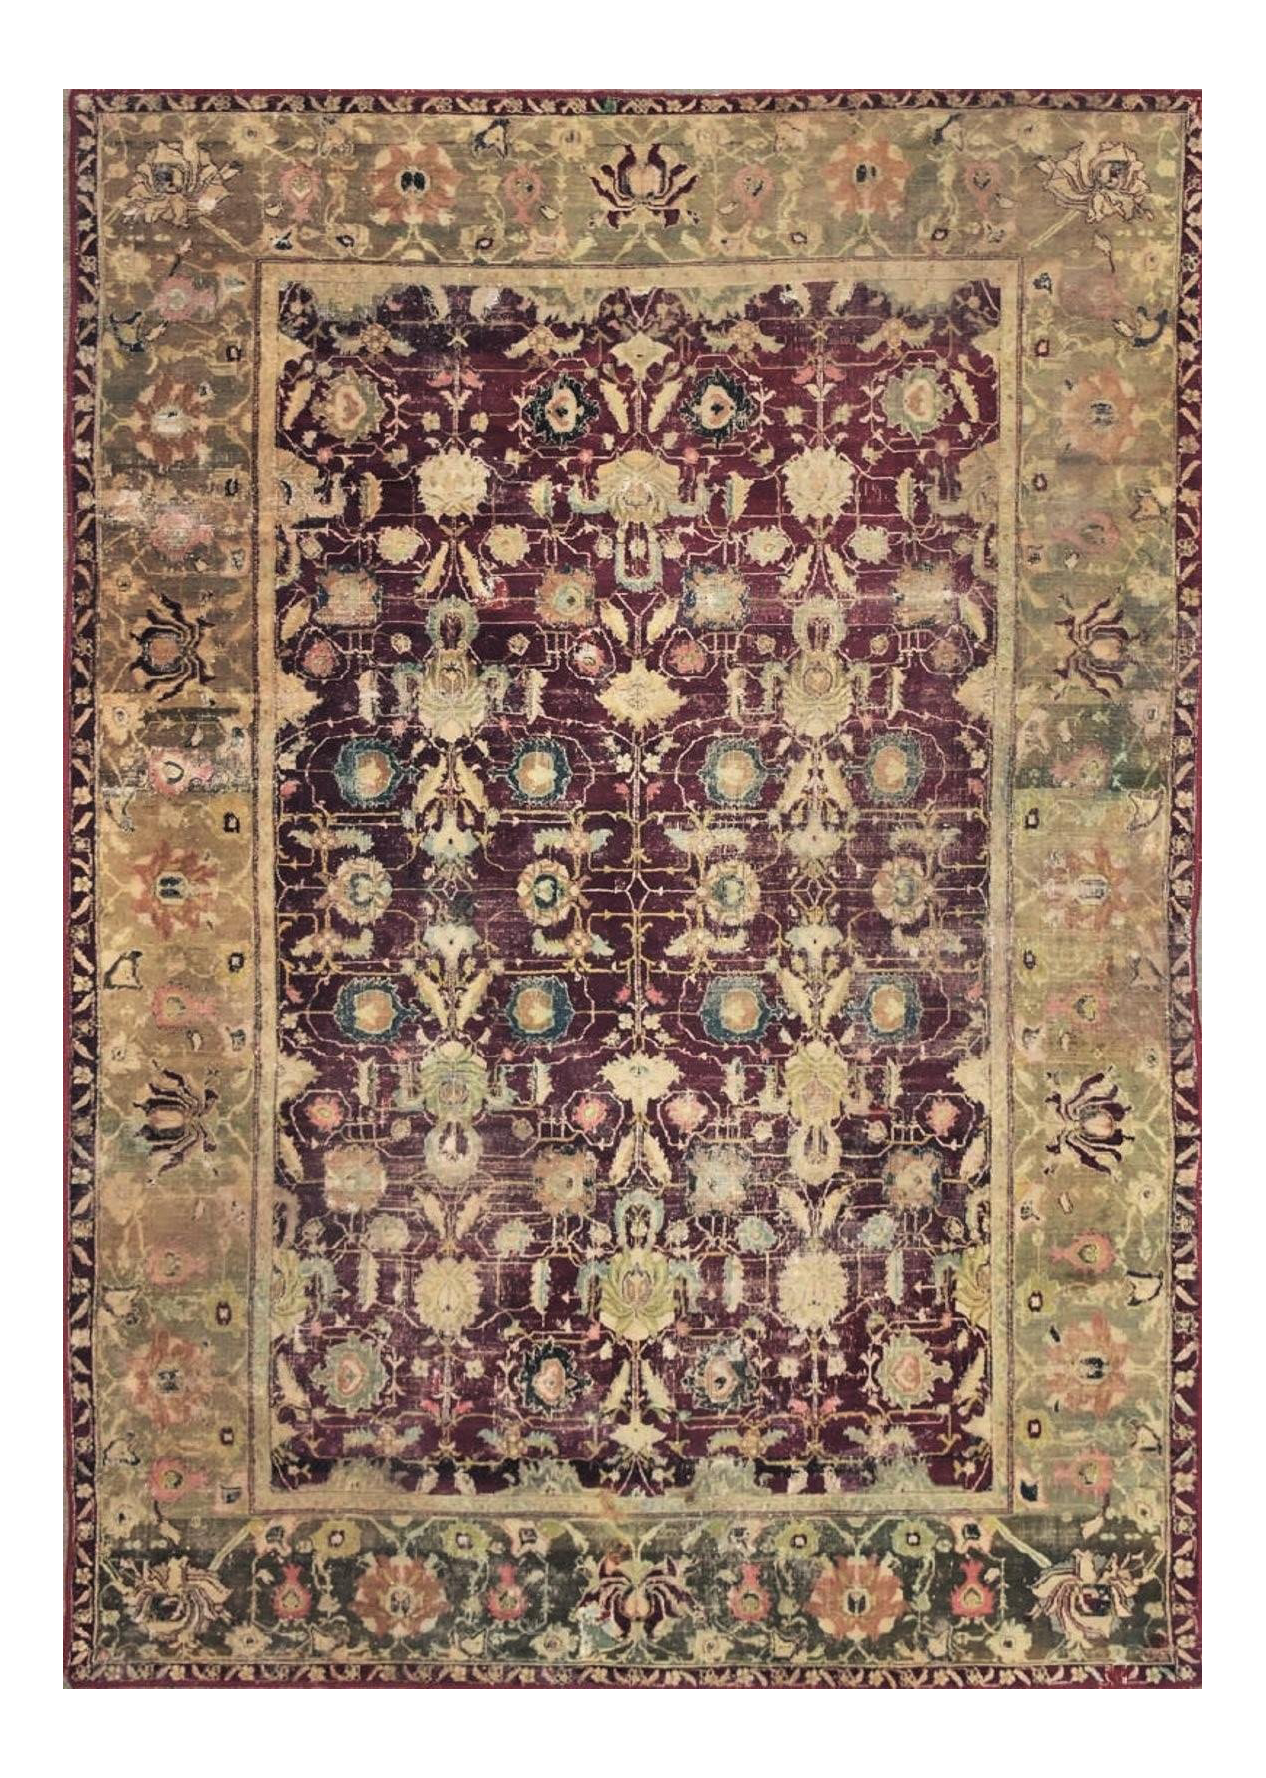 Antique Hand Knotted Agra Rug 7 9 X 11 1 Agra Rug Rugs Green Rug